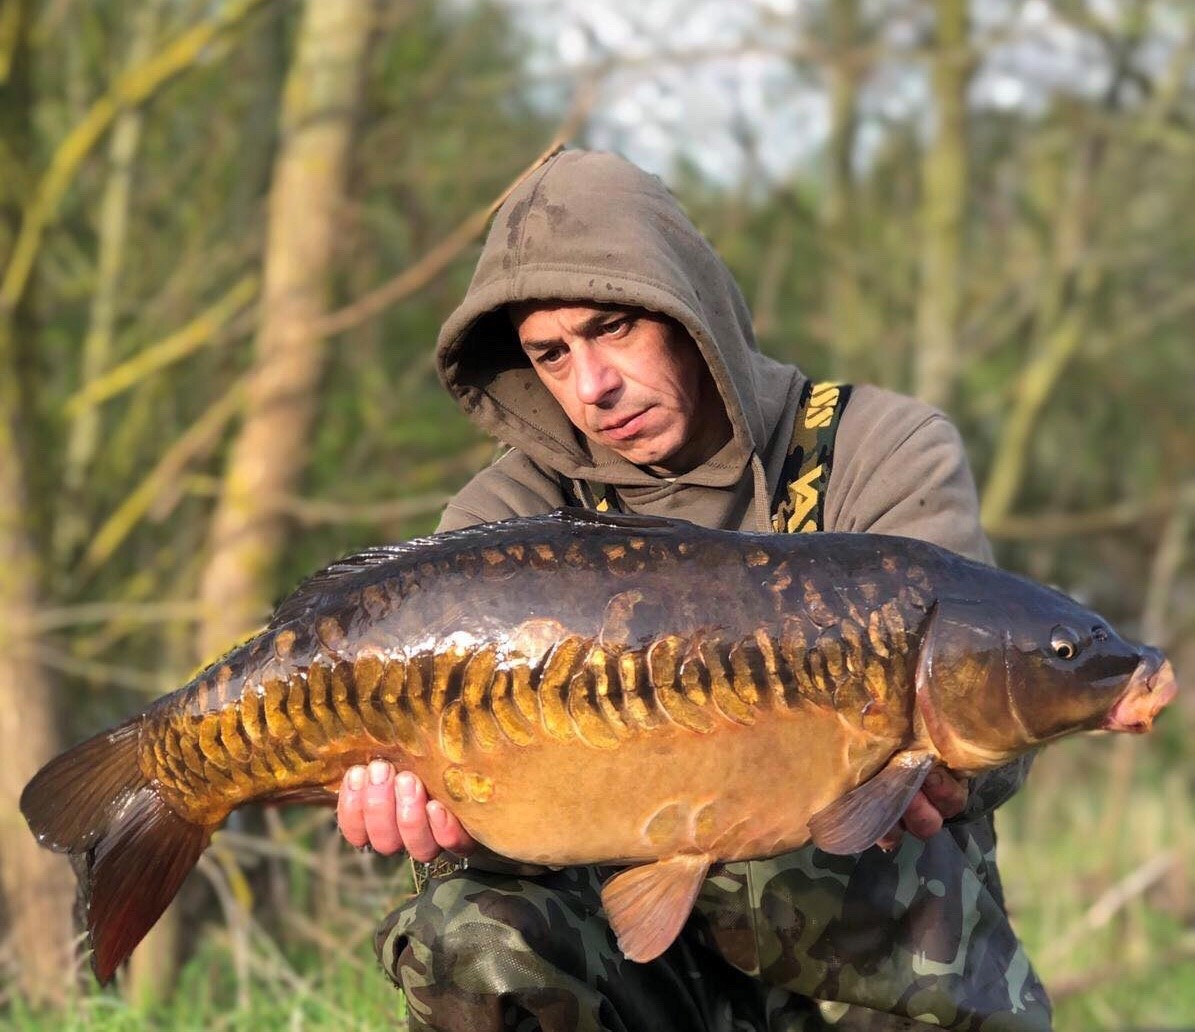 A cracking mirror from a local club water for Kirk 👊 #fishing #carpfishing https://t.co/gTkkFnjmi